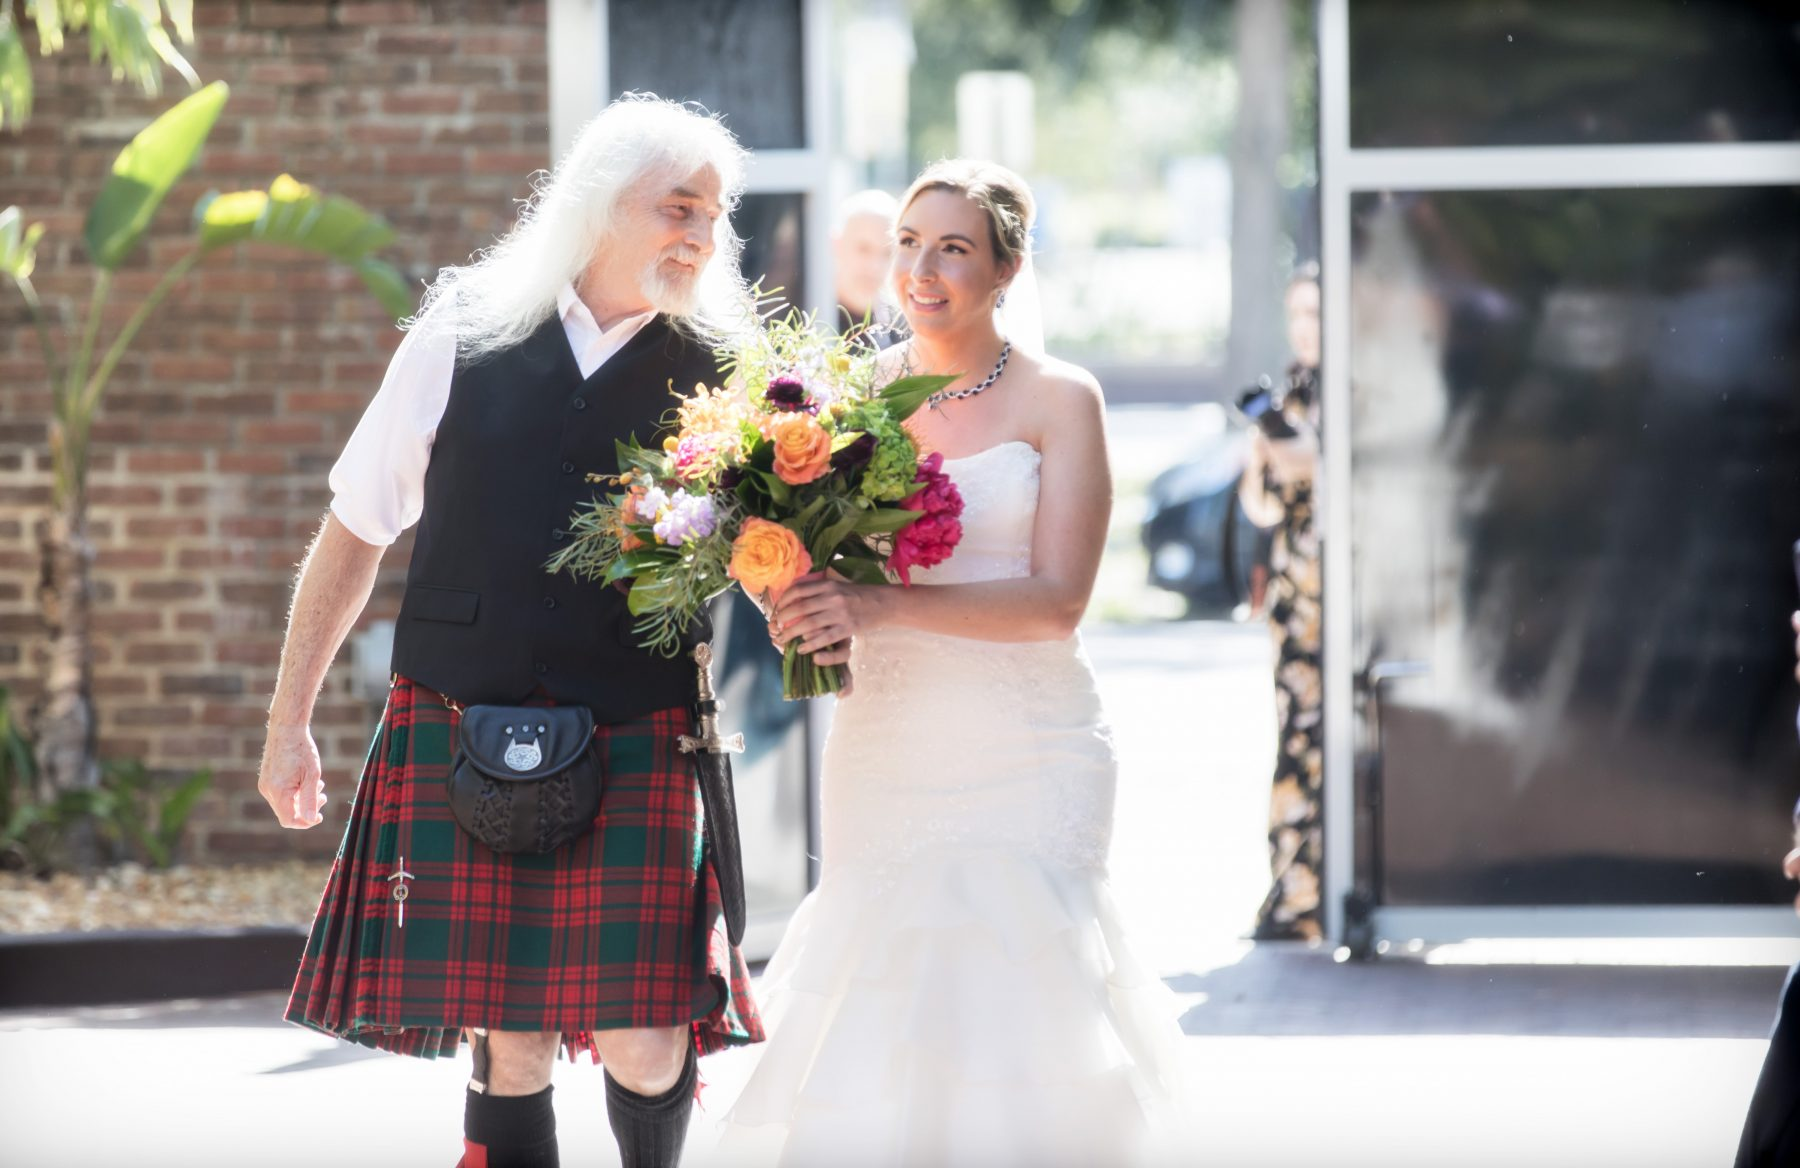 Florida Bride and Kilted father walking down the aisle during processional at ceremony in bamboo courtyard | Downtown St. Pete Premier Wedding Venue NOVA 535